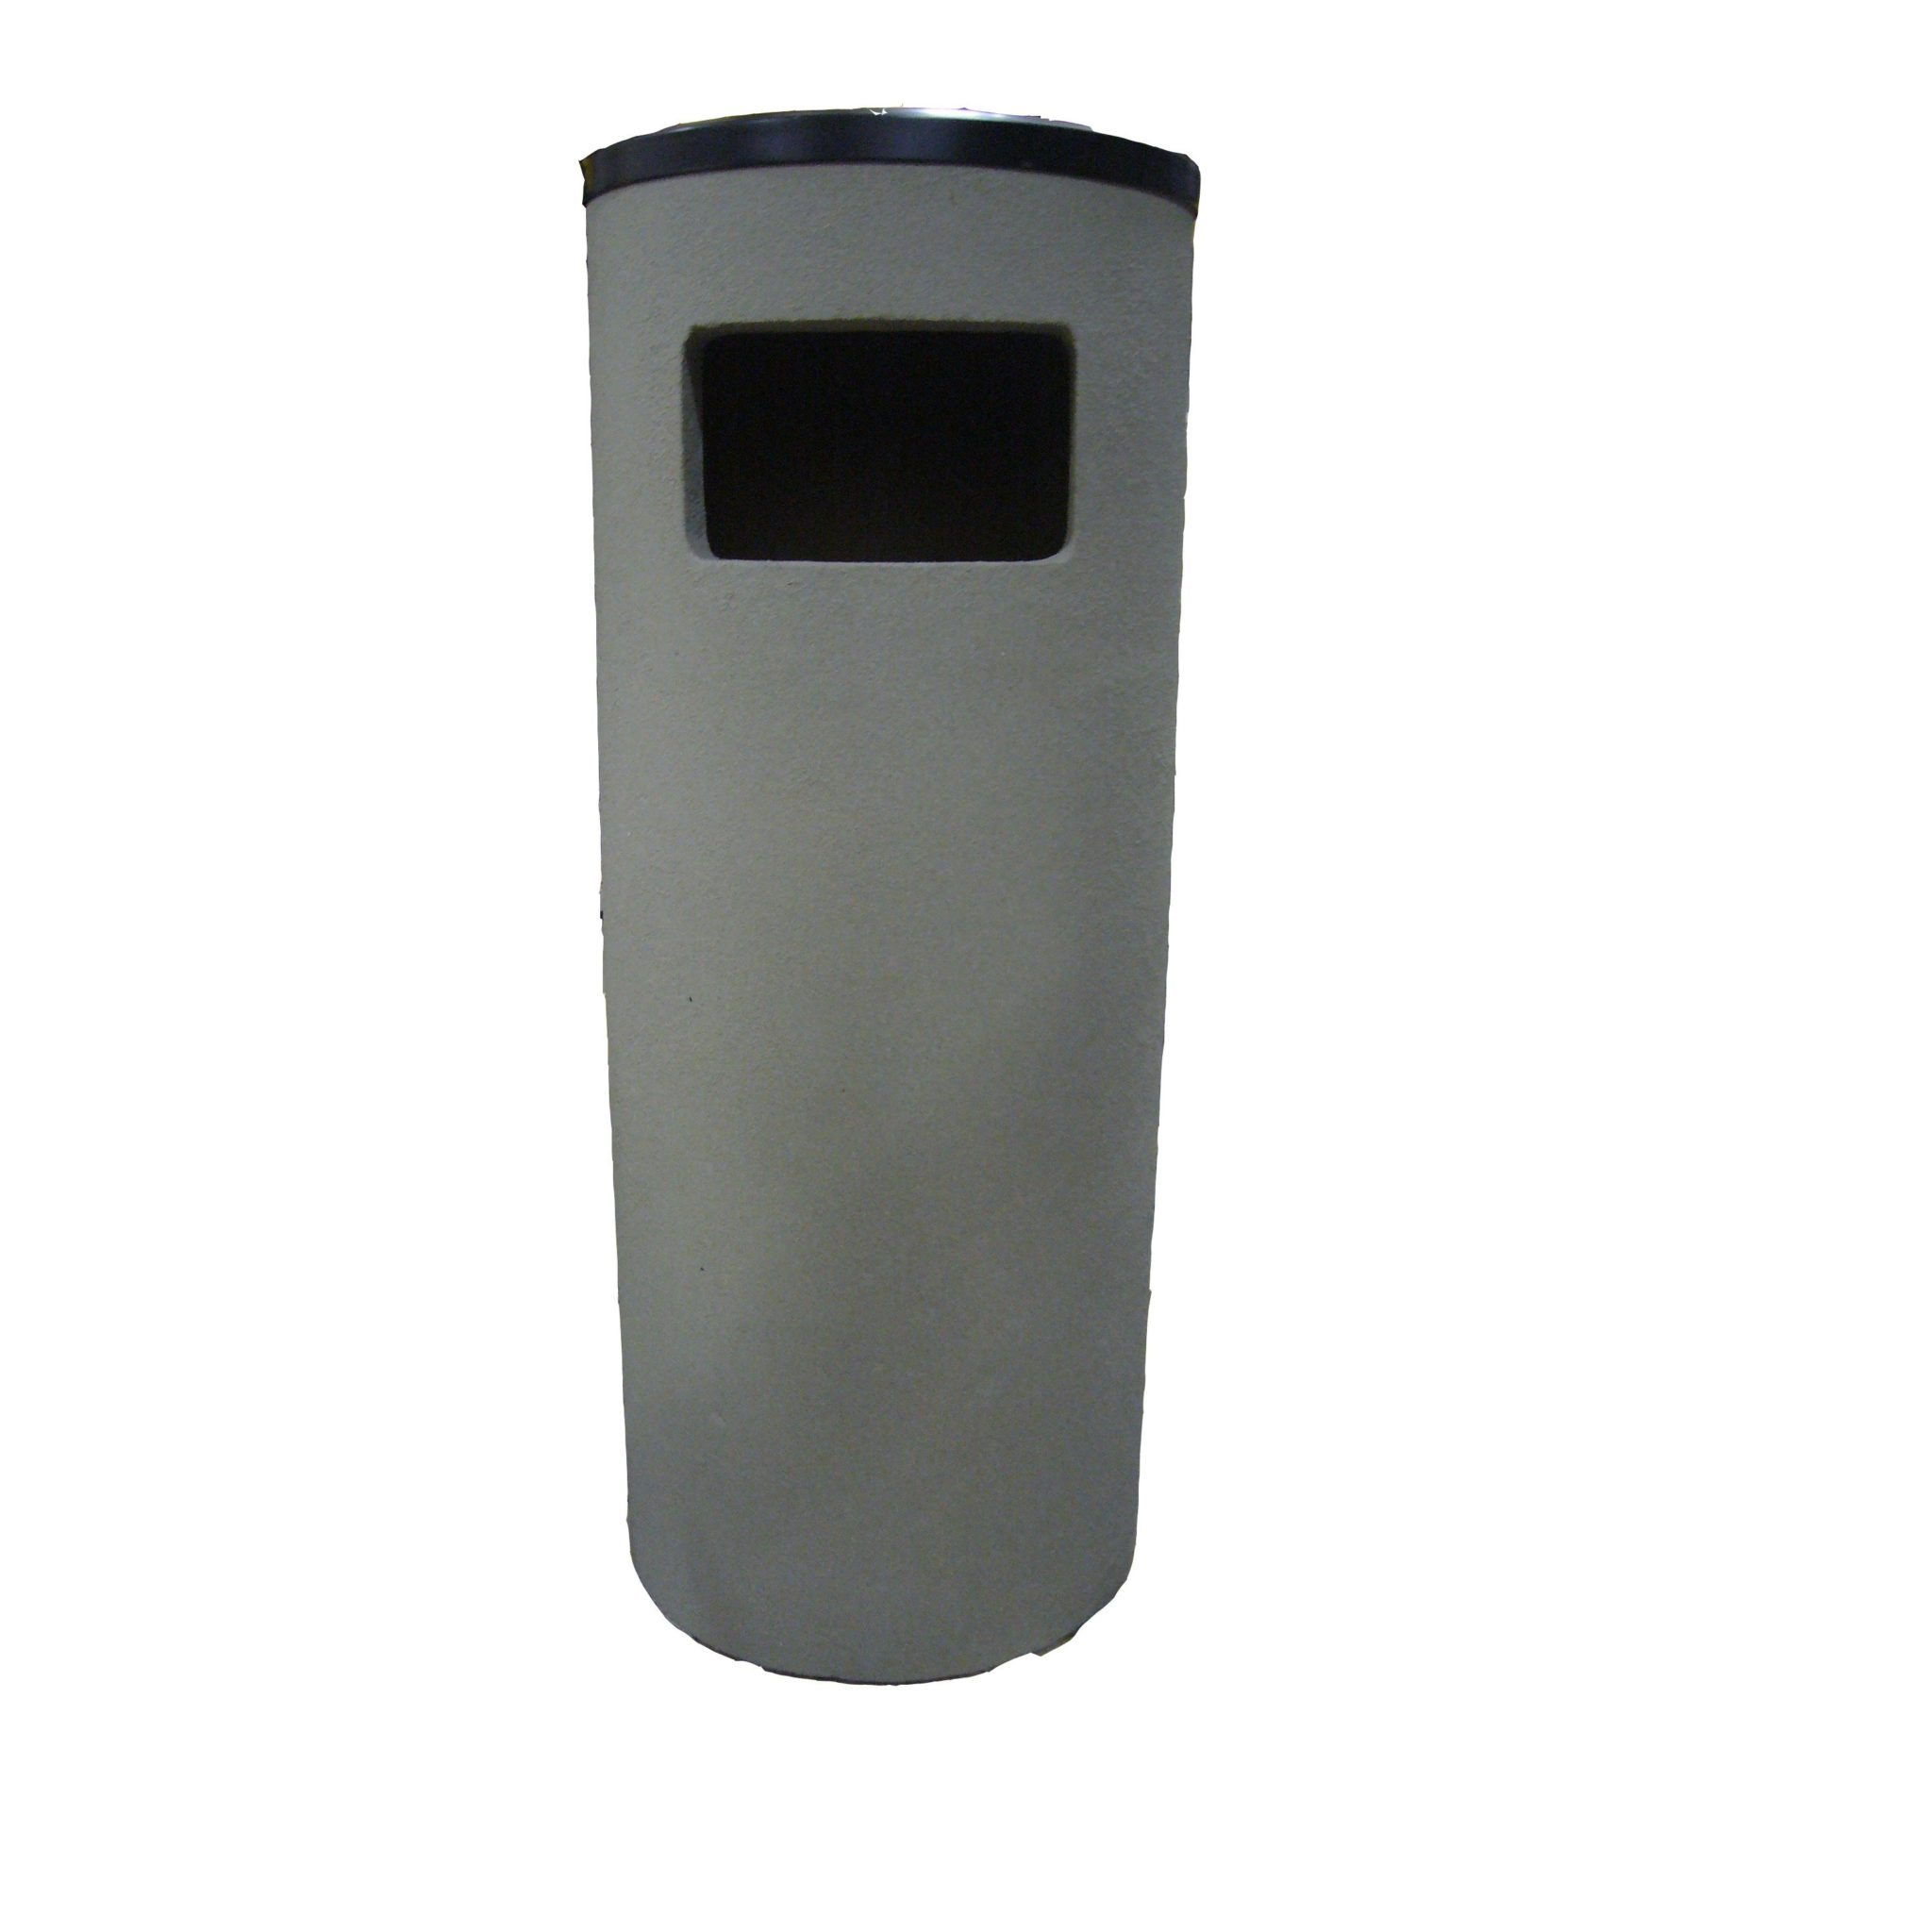 Concrete Ash & Trash Receptacles